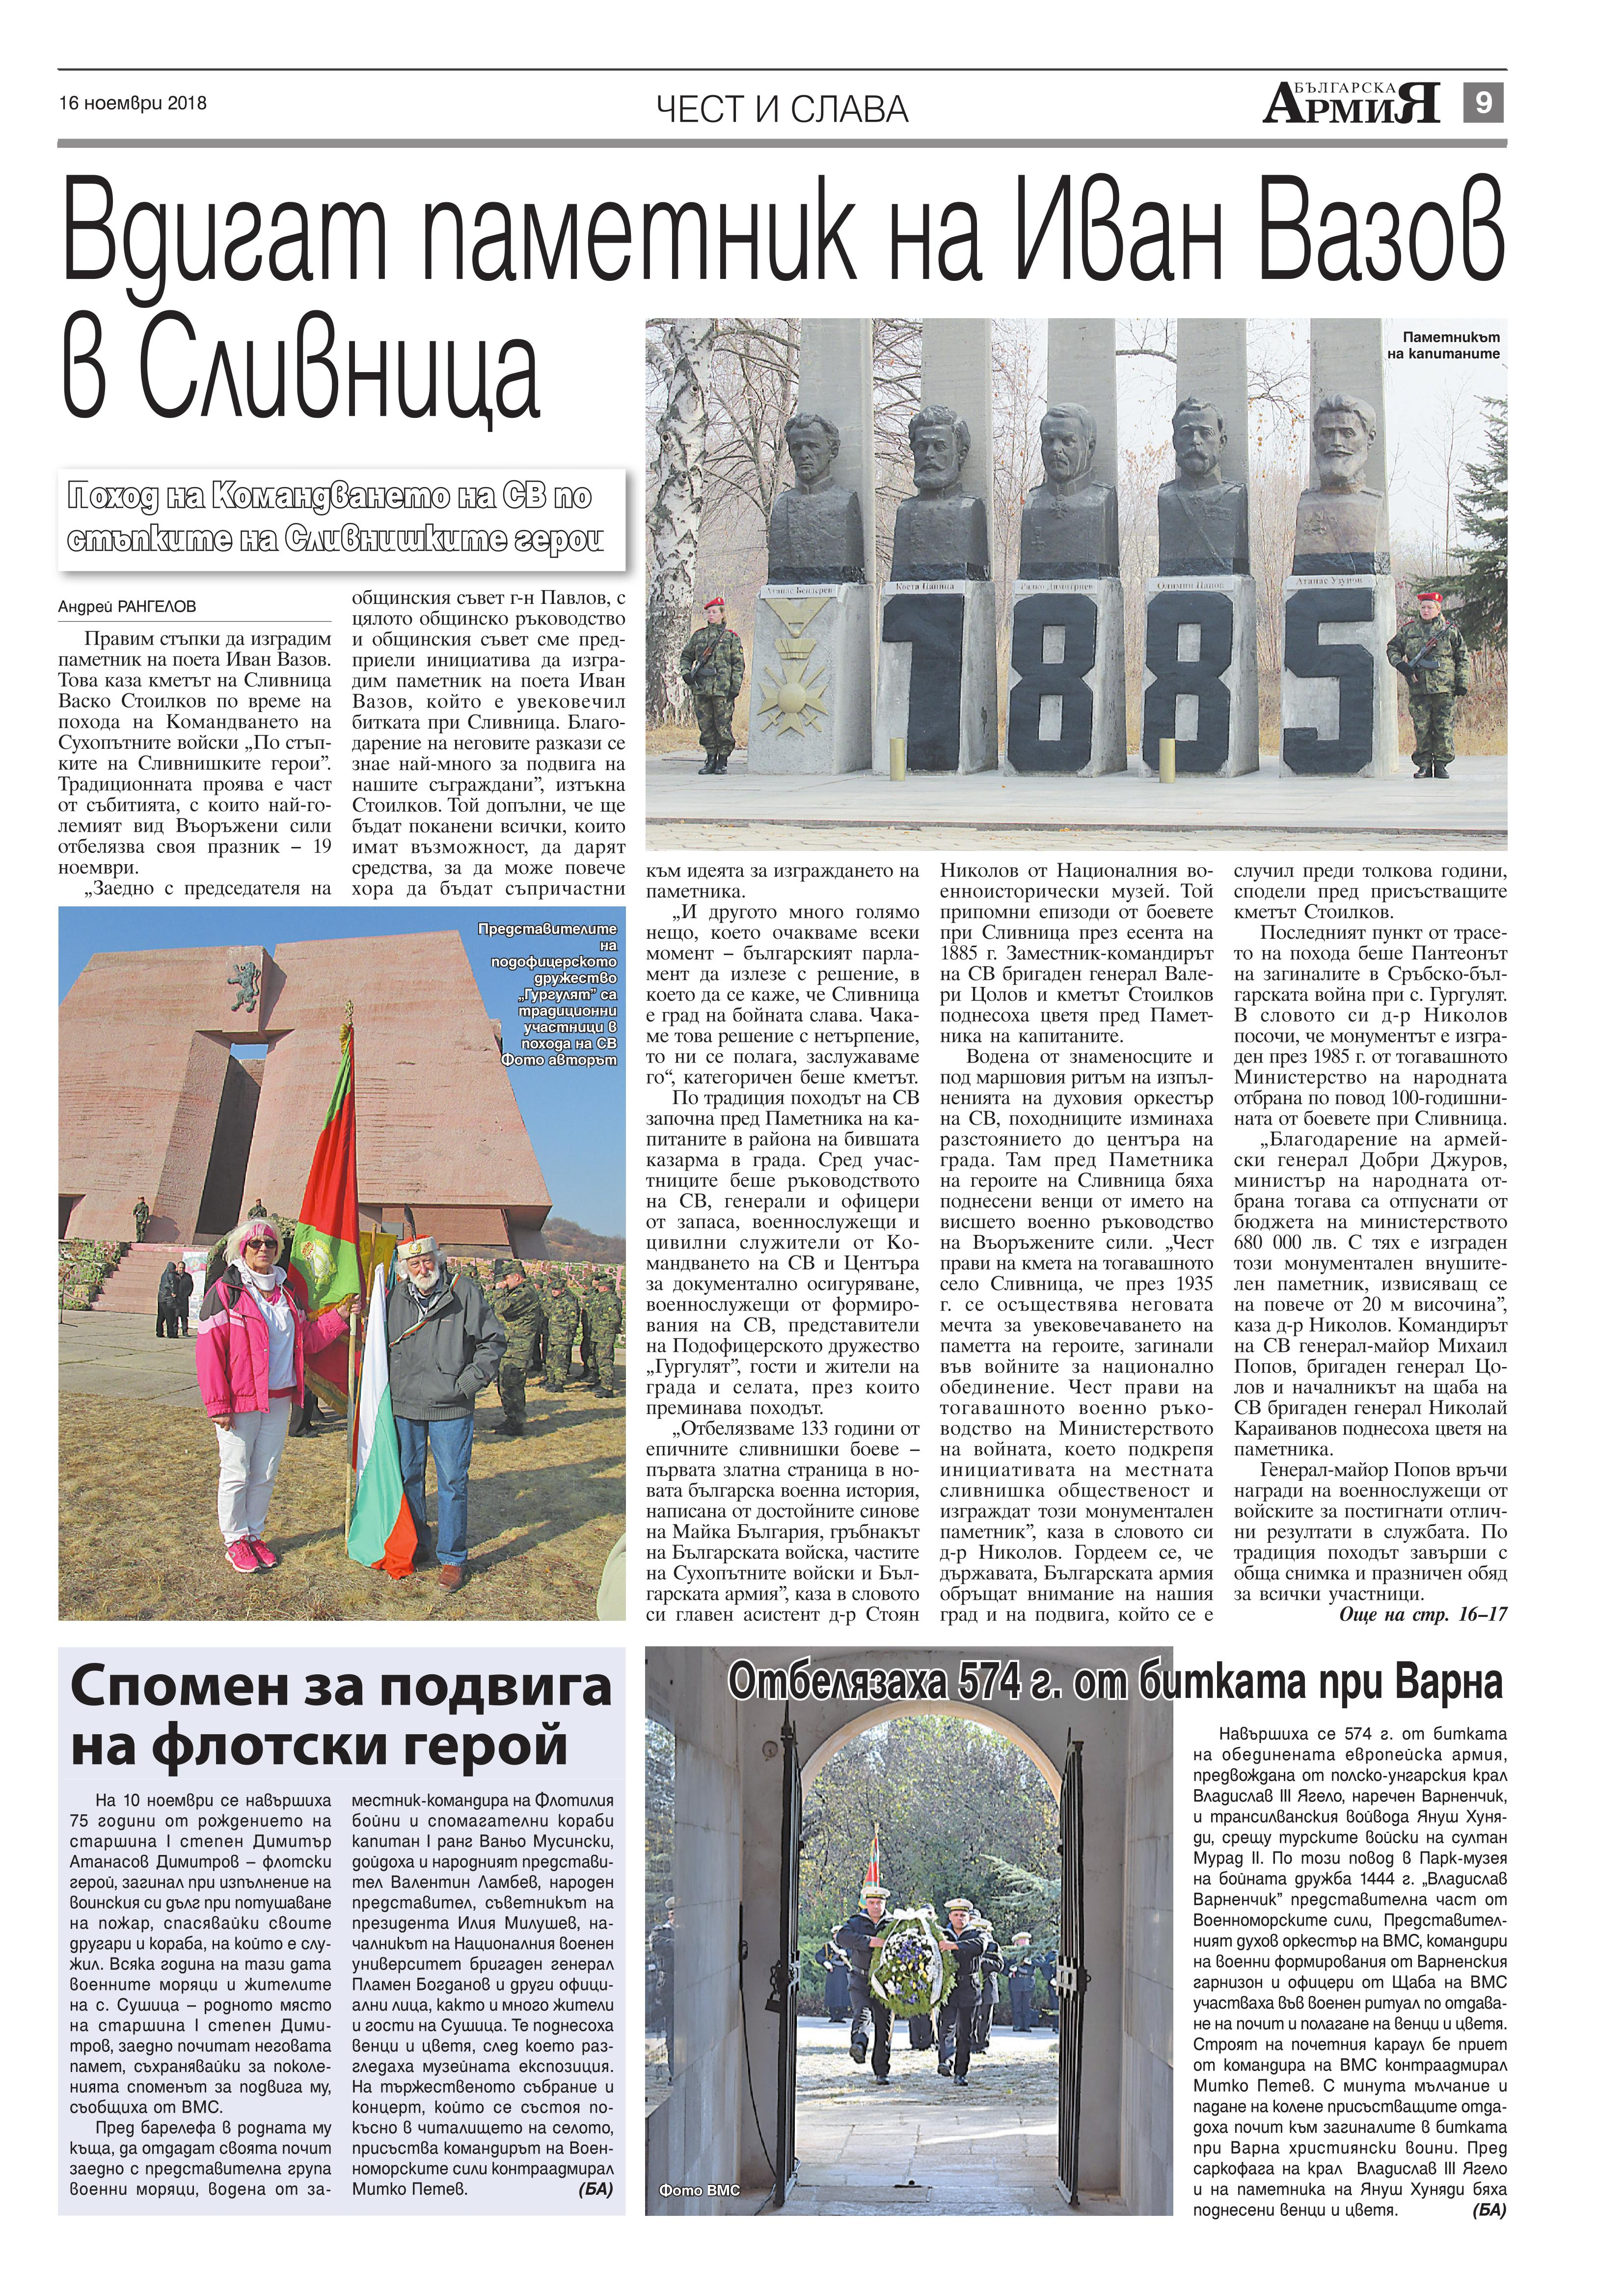 https://armymedia.bg/wp-content/uploads/2015/06/09.page1_-71.jpg